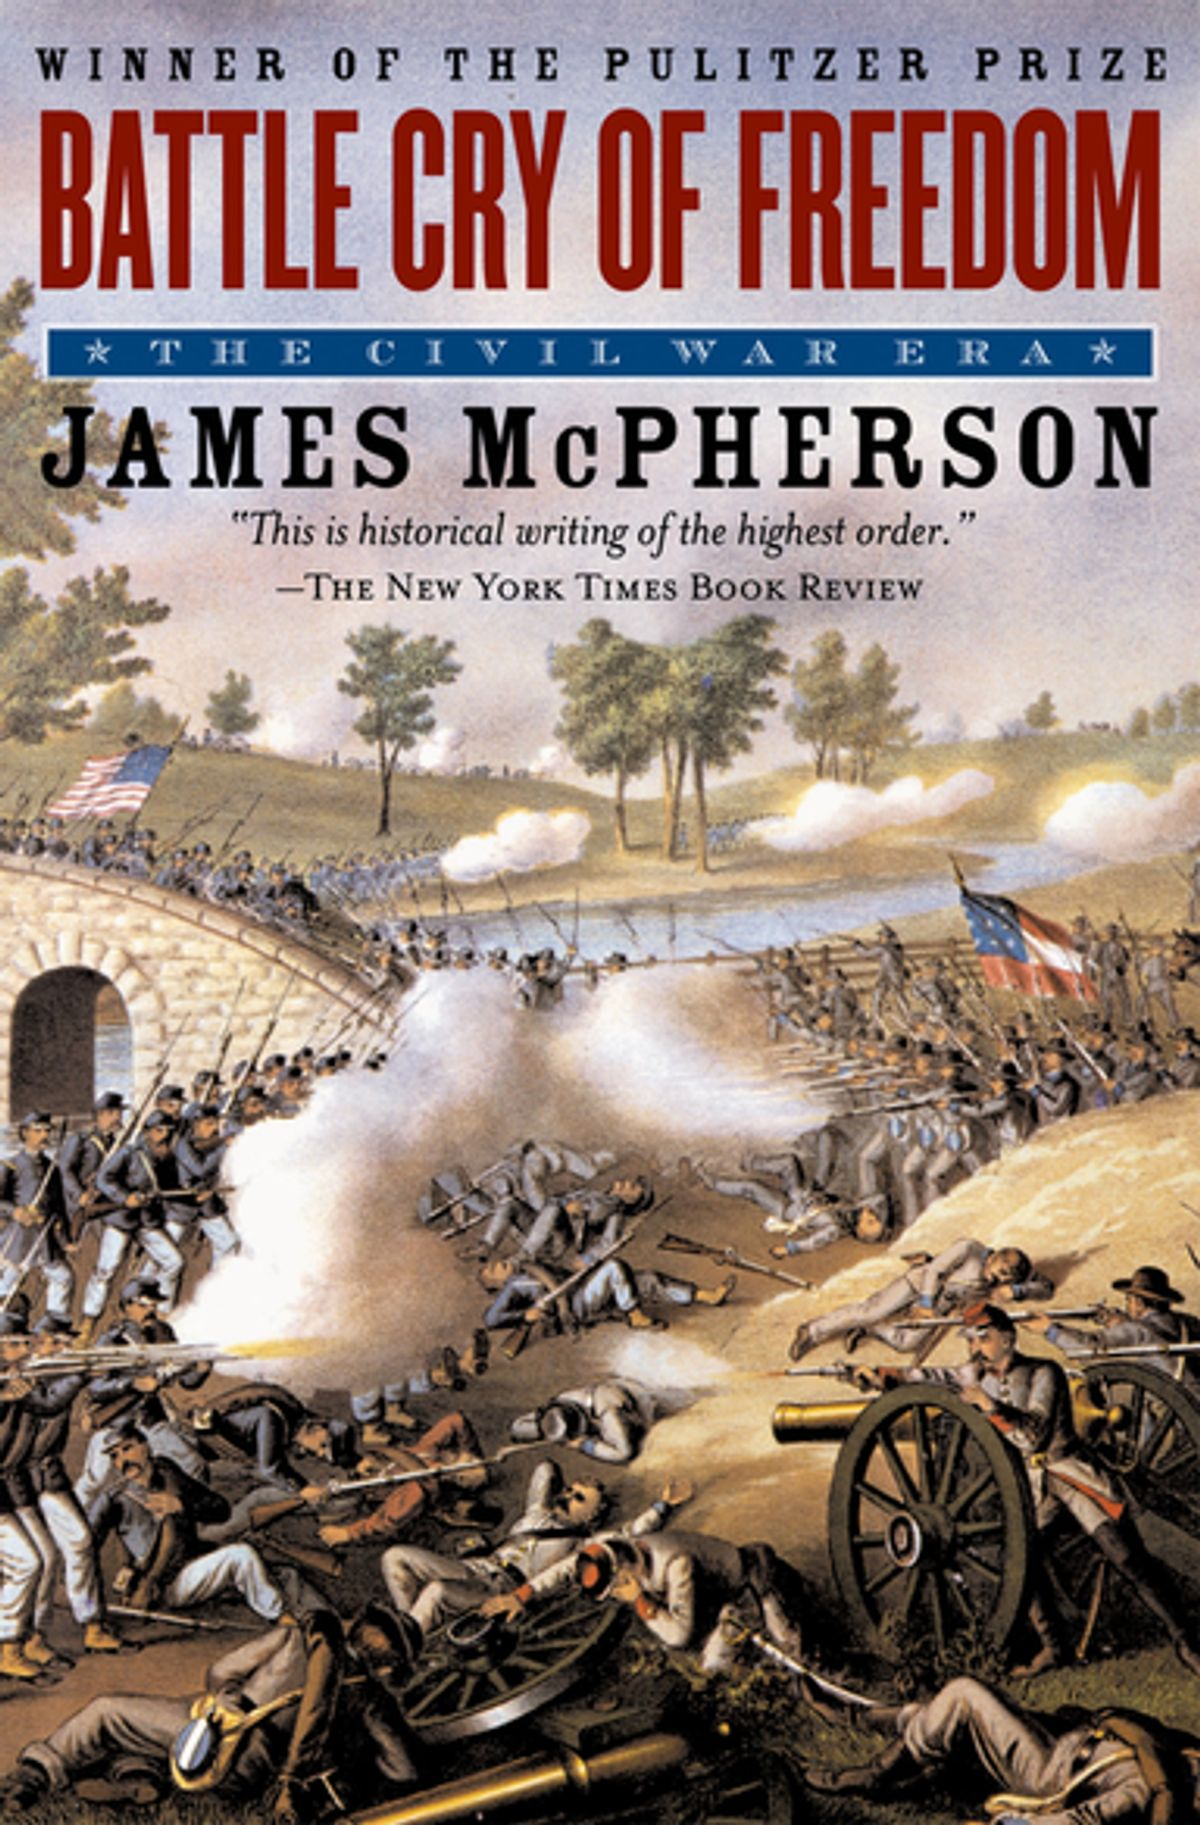 21) Battle Cry of Freedom - Even if you aren't particularly interested in the American Civil War era, Battle Cry of Freedom is still worth your time simply because it's the pinnacle of historical non-fiction. James McPherson's 1988 text is remarkably sharp despite its age, and is probably the best single volume history book of all time. It's unbiased, fair, scathing when necessary, incredibly well researched, and despite its sprawling and complex subject matter, a very easy read. For anyone interested in American history it's an absolute must-read, and even if you aren't chances are it'll change your mind.